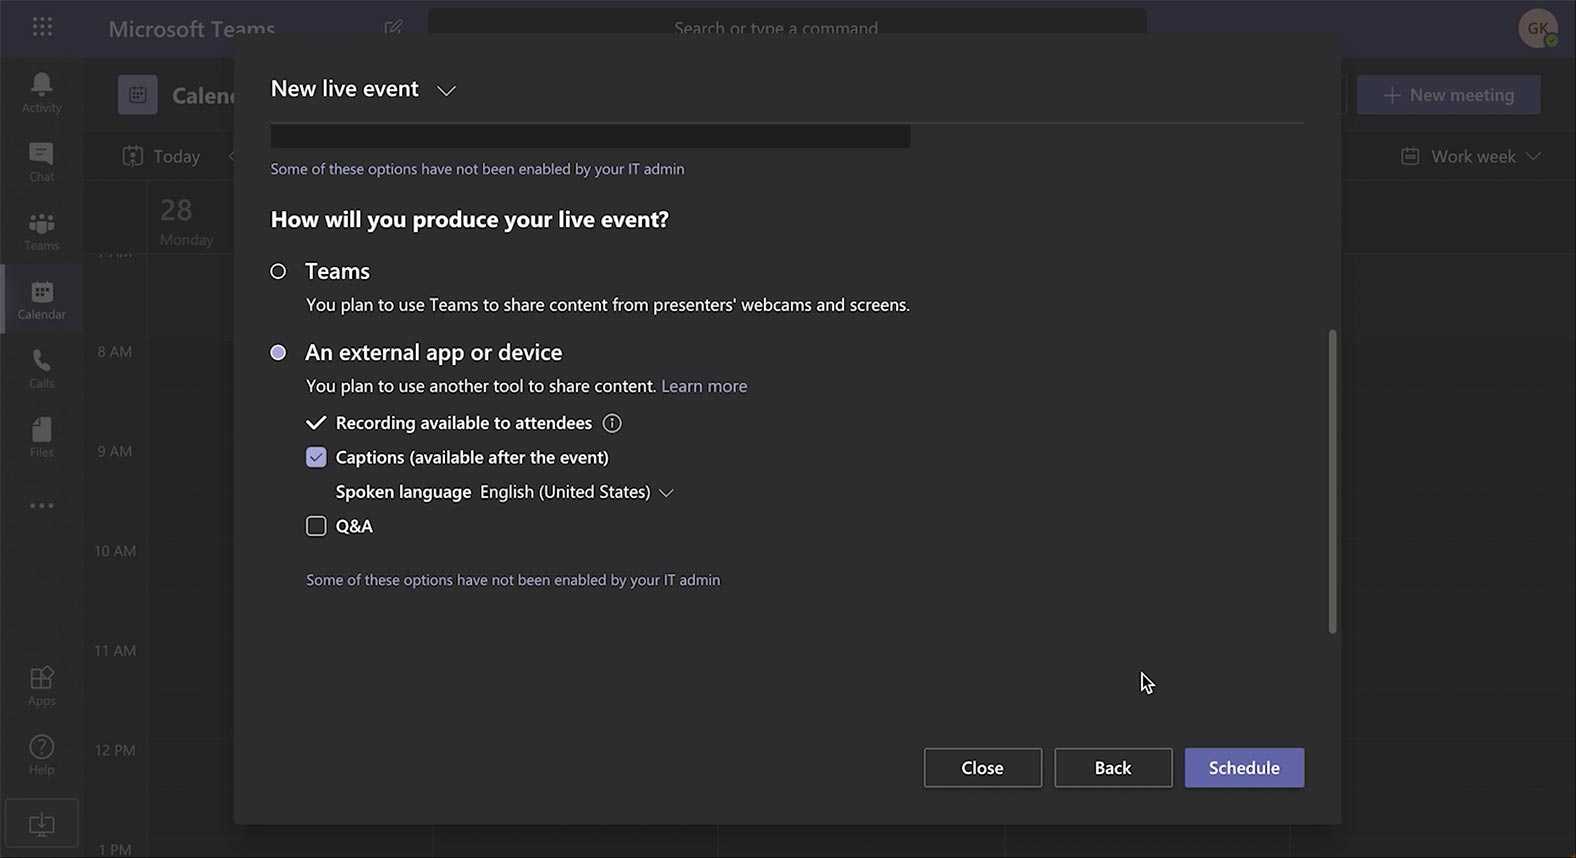 Setting up your event production for Microsoft Teams